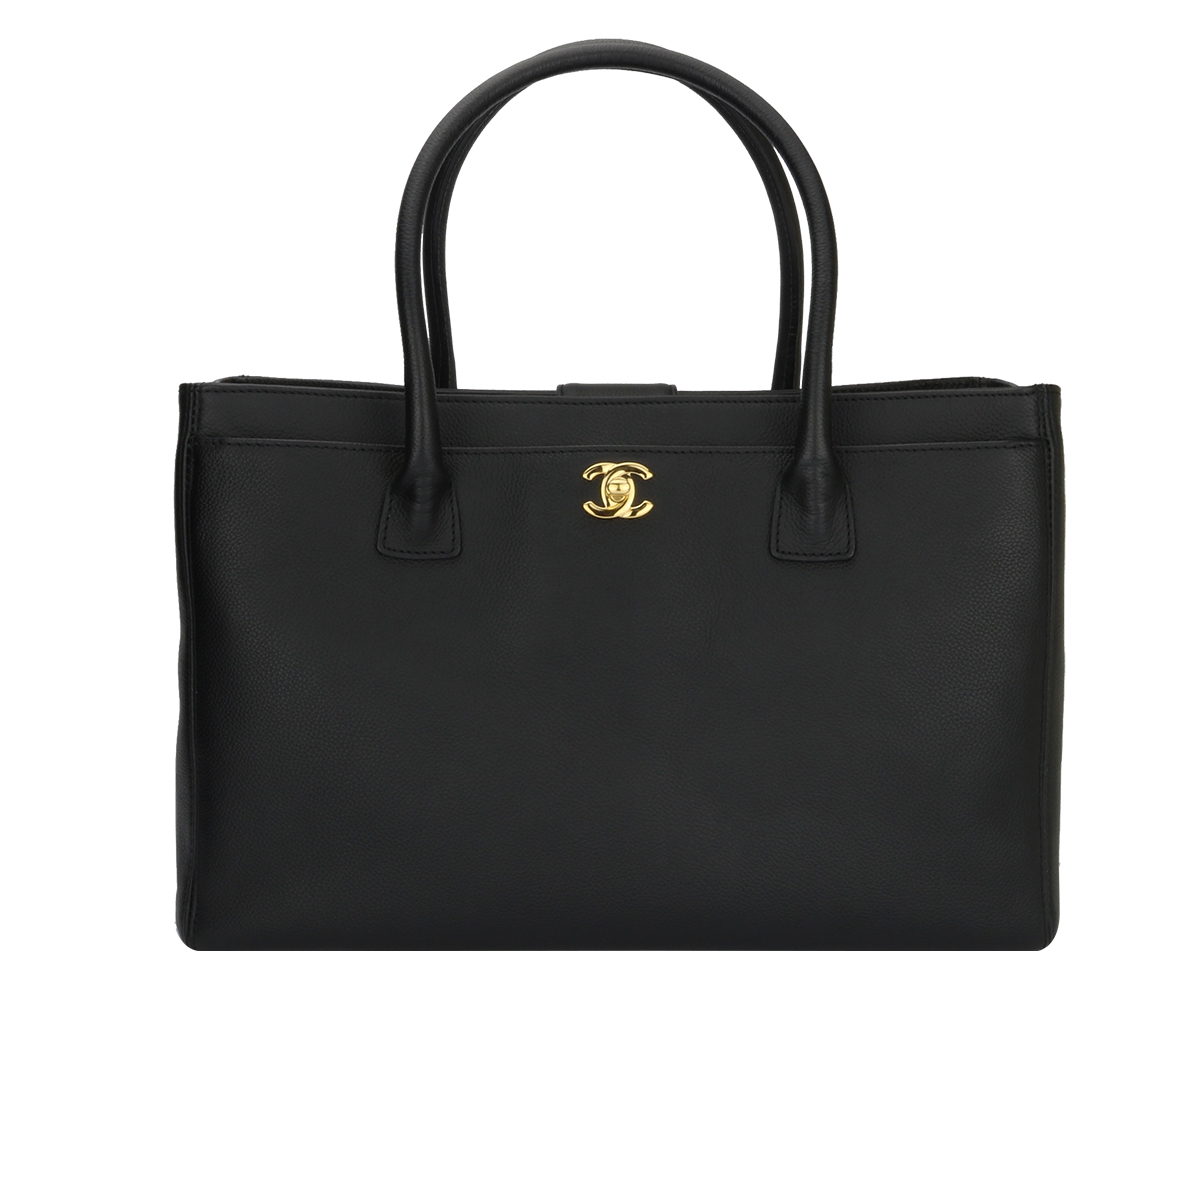 5cfe43c4717a CHANEL Executive Cerf Tote Black Calfskin Gold Hardware 2013 - BoutiQi Bags